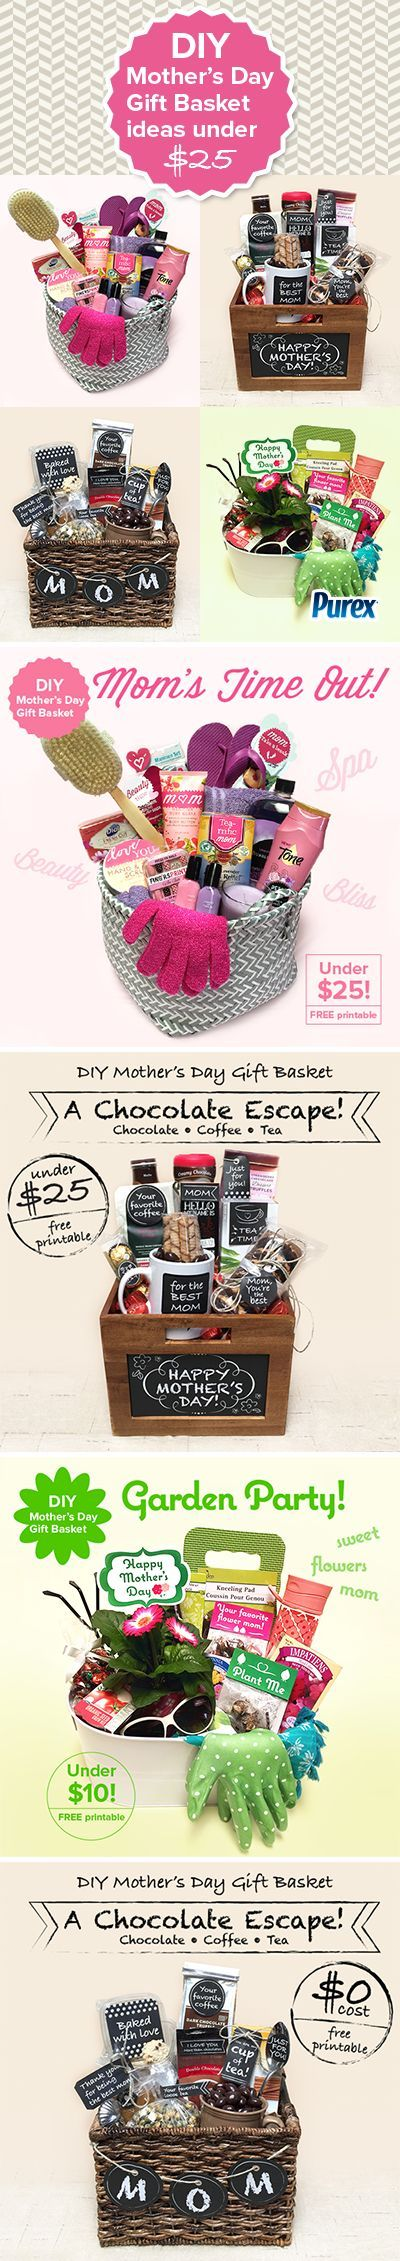 Halloween gift baskets for mother's day